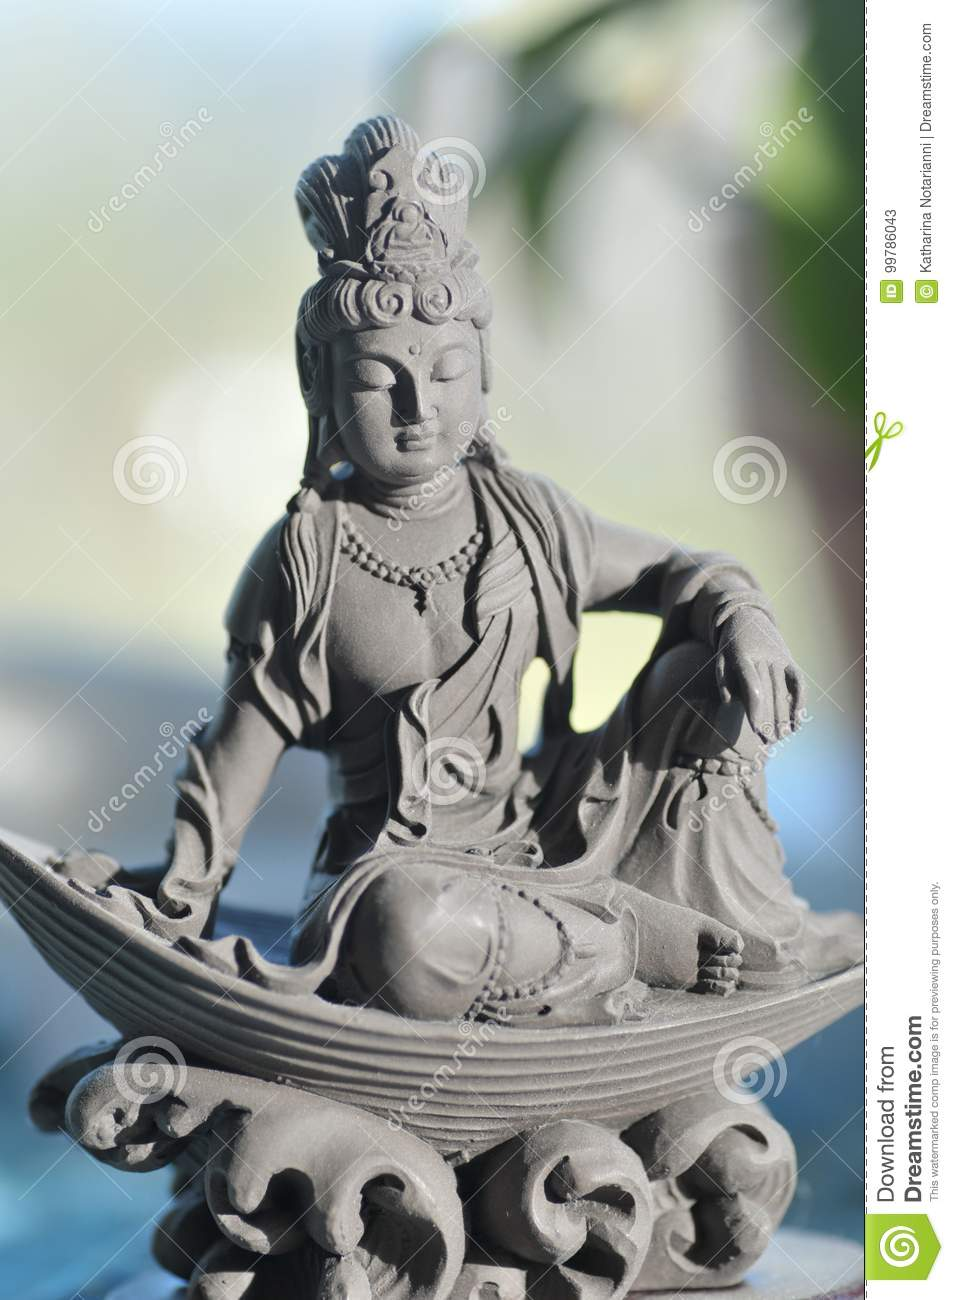 Ceramic Quan Yin Goddess of Compassion and Mercy